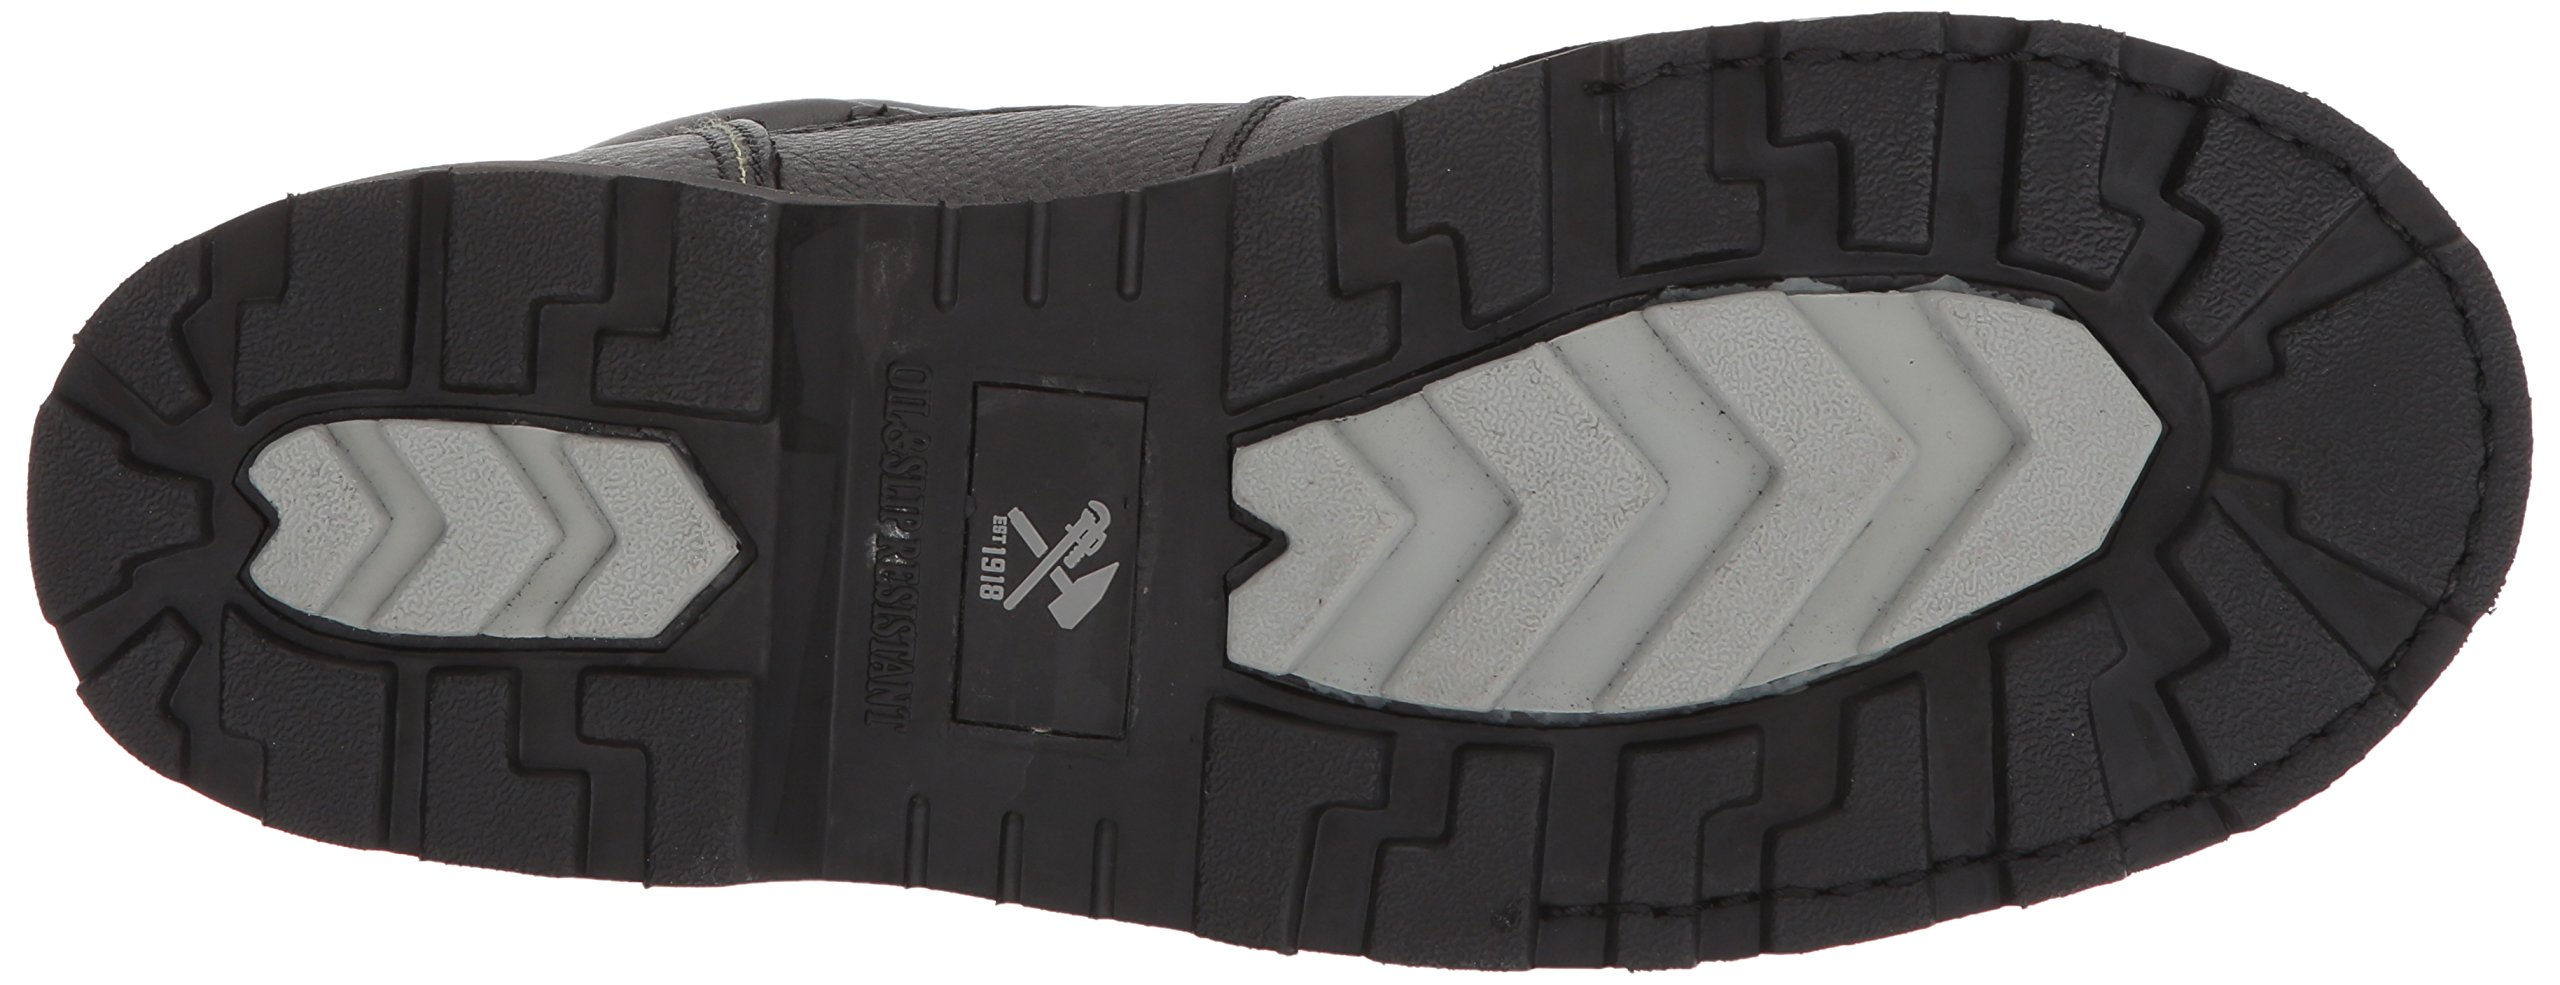 Iron Age Men's Ia5016 Ground Breaker Industrial and Construction Shoe, Black, 10.5 M US by Iron Age (Image #3)